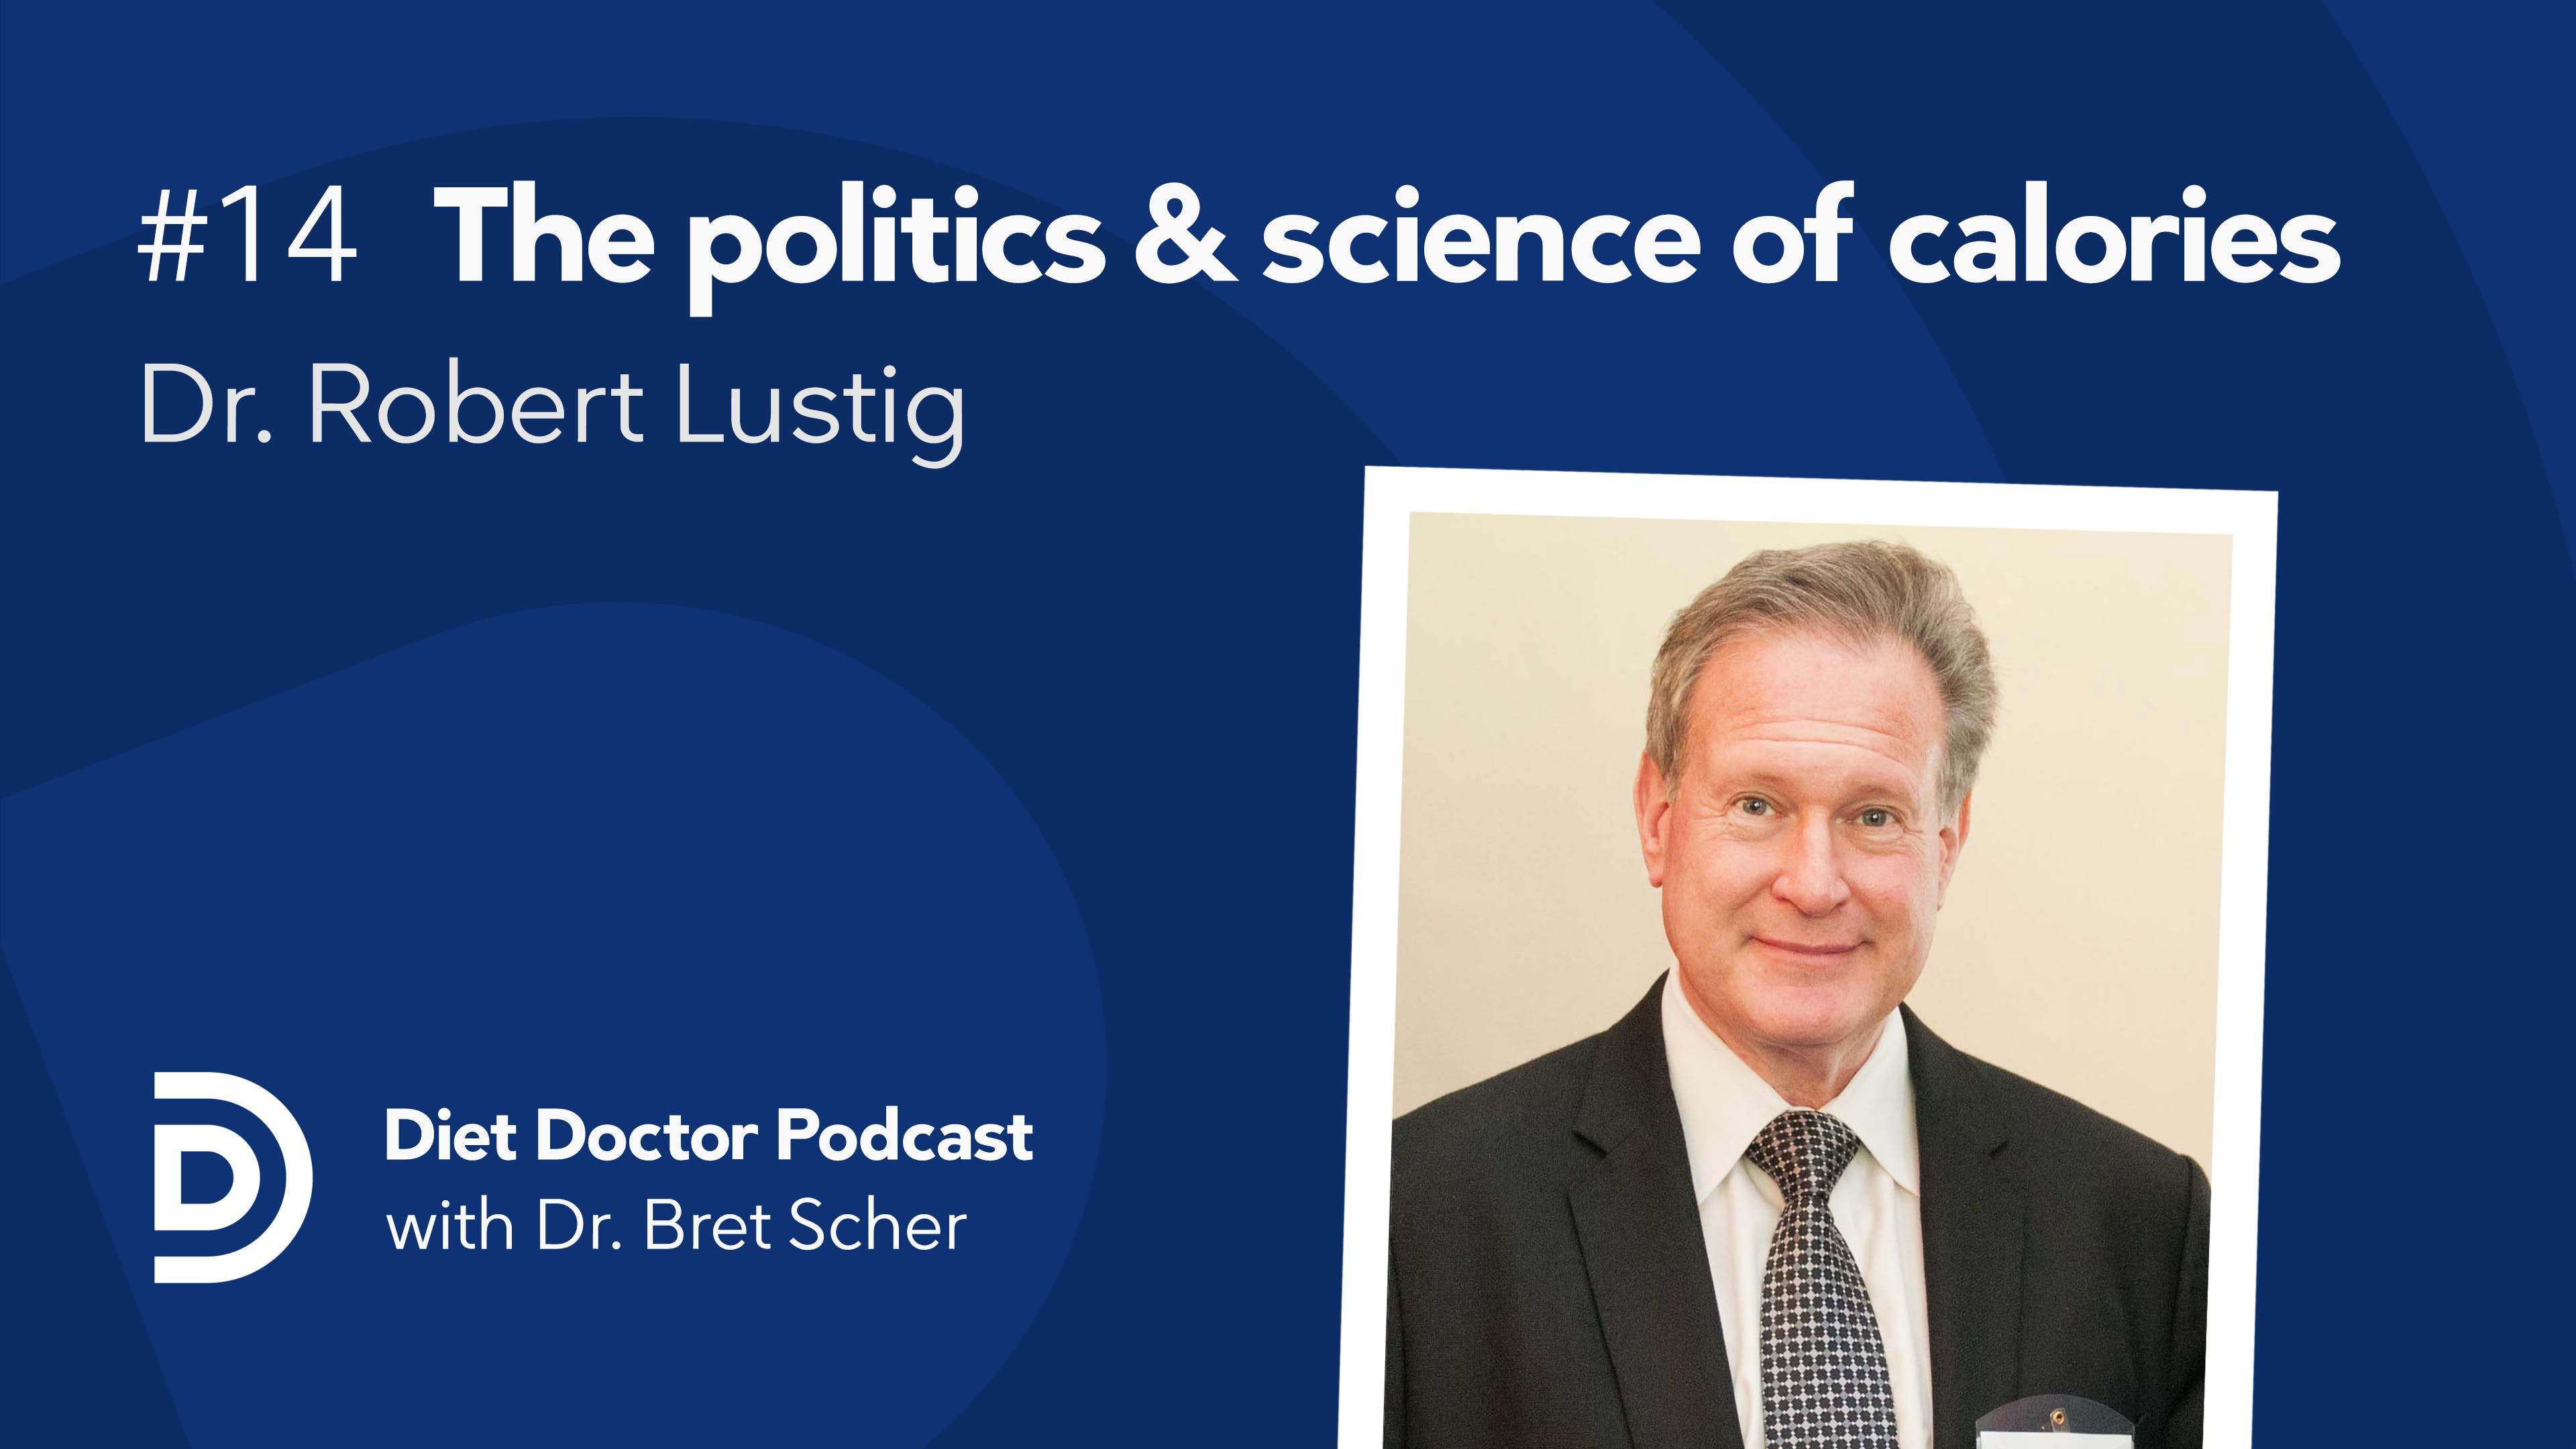 Diet Doctor podcast #14 with Dr. Robert Lustig